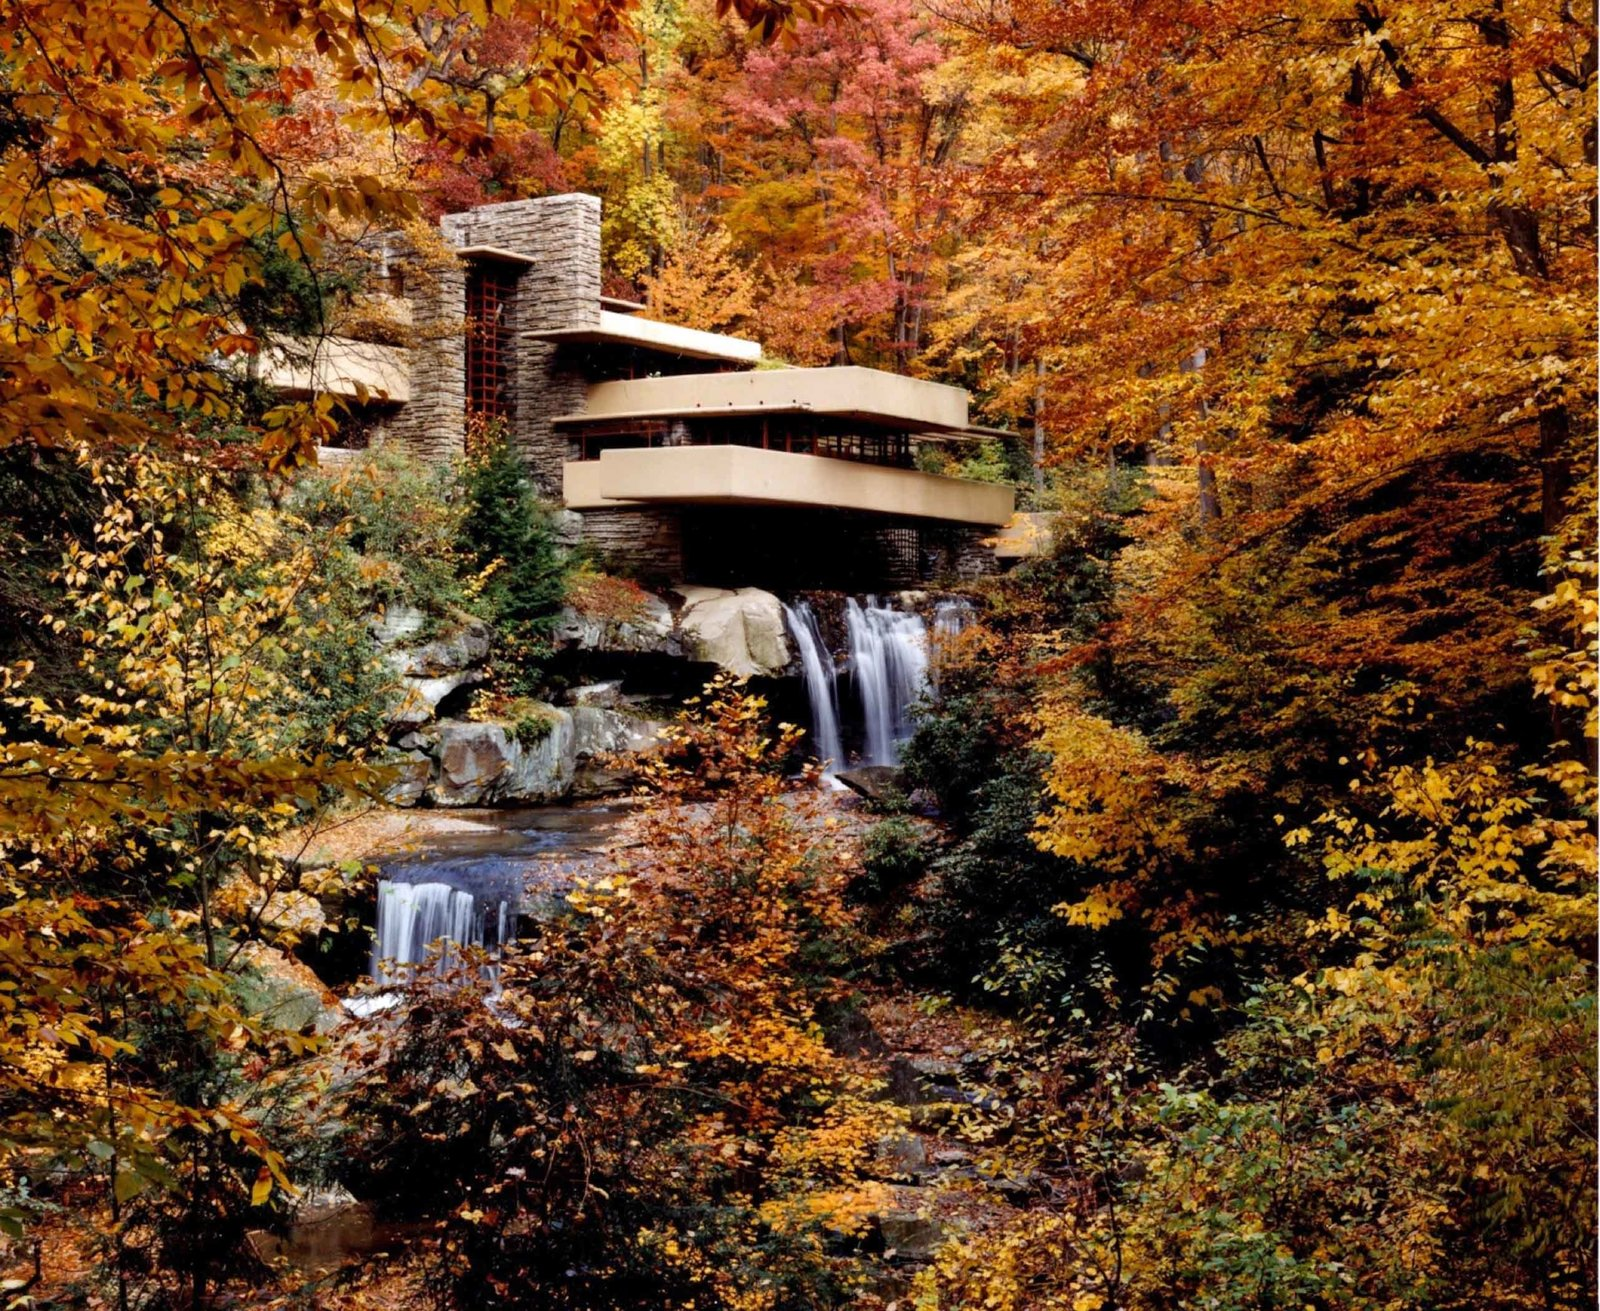 Fallingwater (1935, Mill Run, Pennsylvania). The legendary Fallingwater residence, a masterpiece in concrete, steel, and glass, is built with three levels that project over a 30-foot waterfall.  Iconic Frank Lloyd Wright Buildings by Allie Weiss